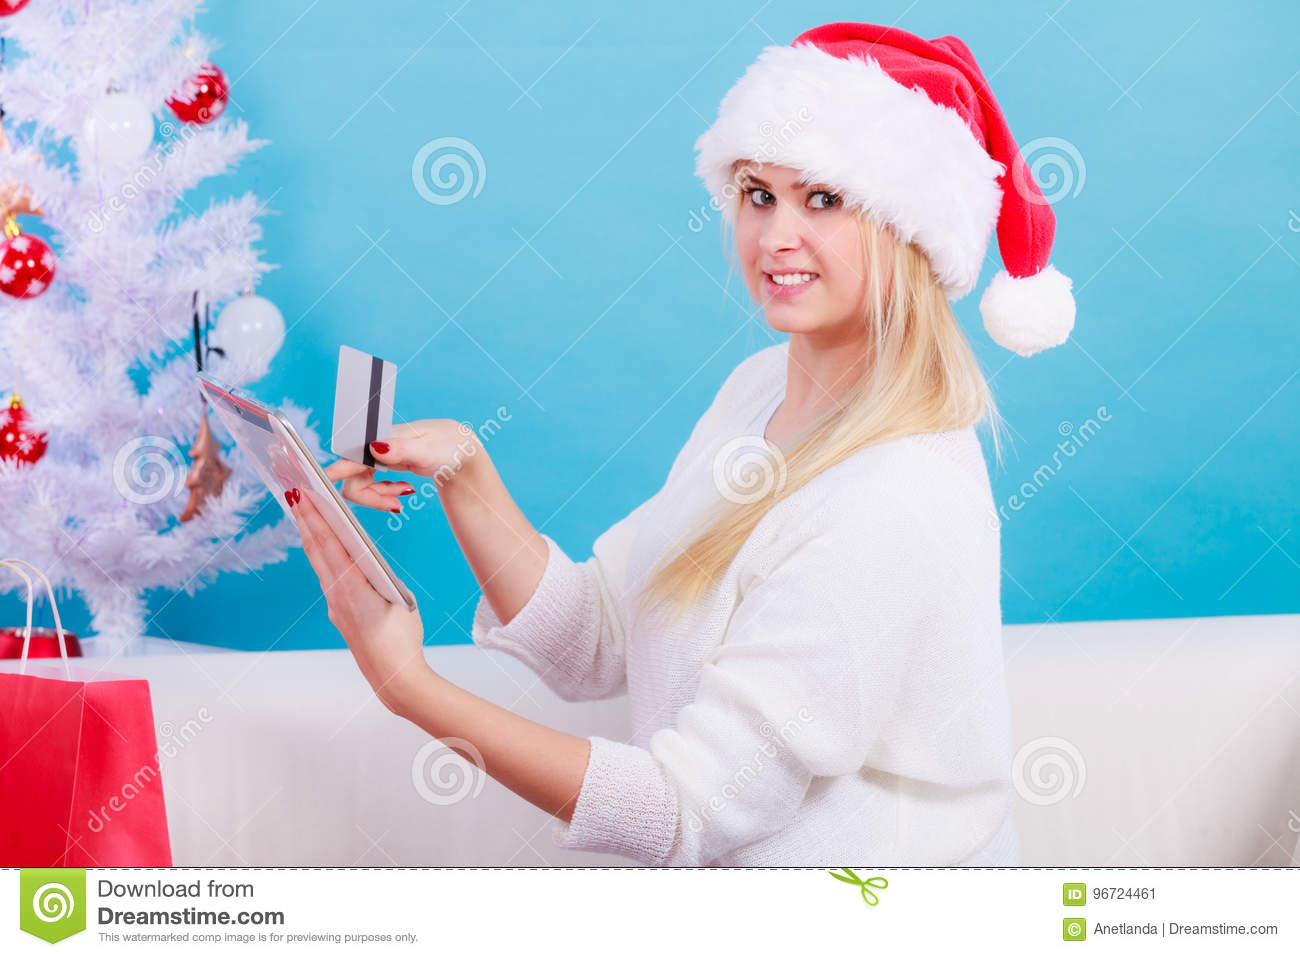 Woman Buying Christmas Gifts Online Stock Image - Image of holding ...